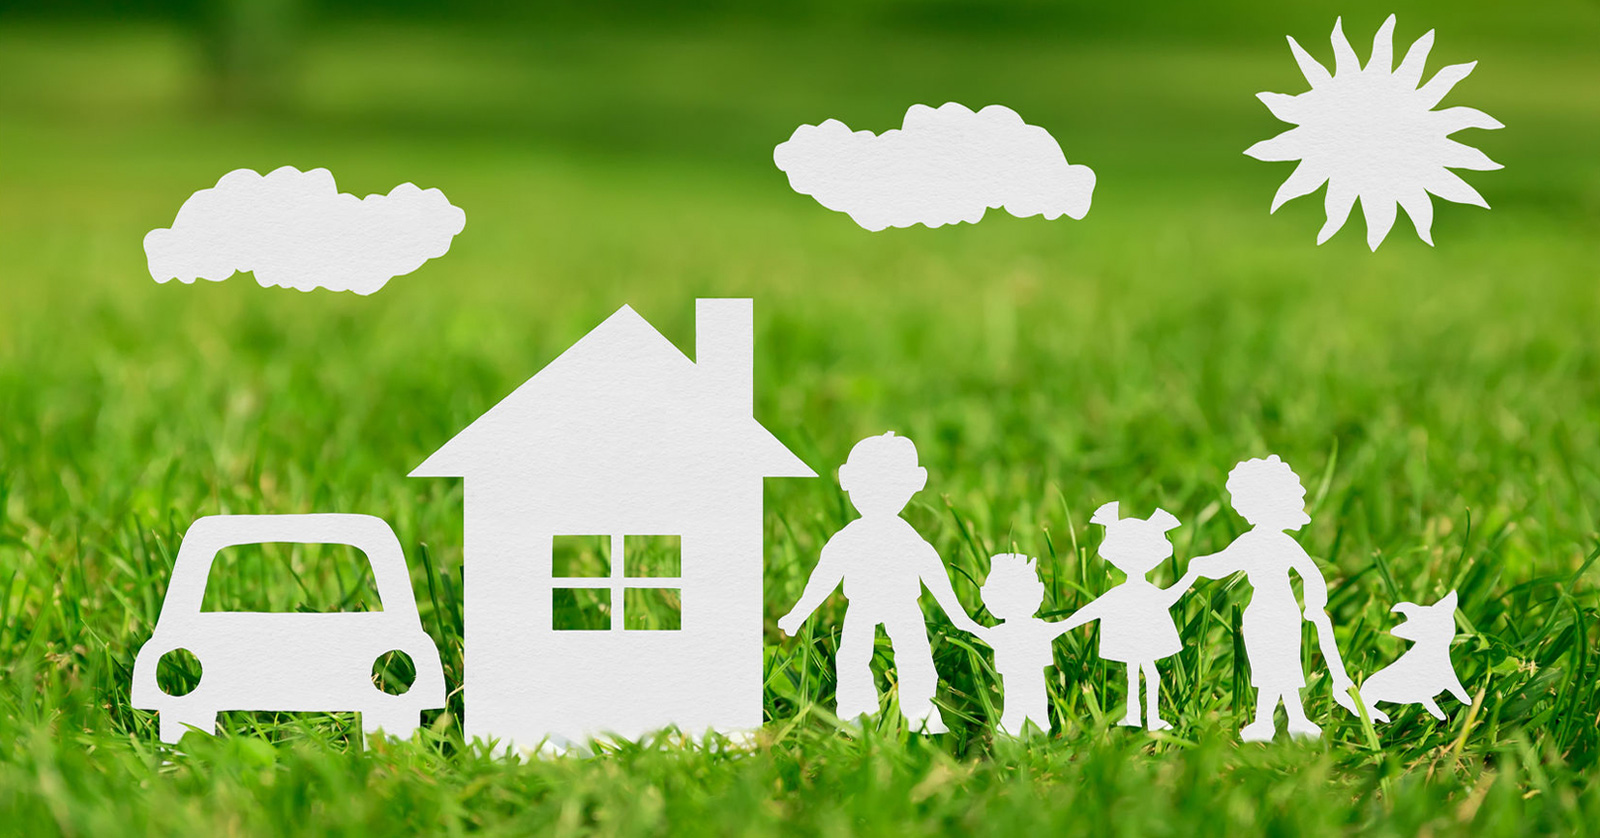 38973594-Paper-cut-of-family-with-house-and-car-on-green-grass-Stock-Photo-1